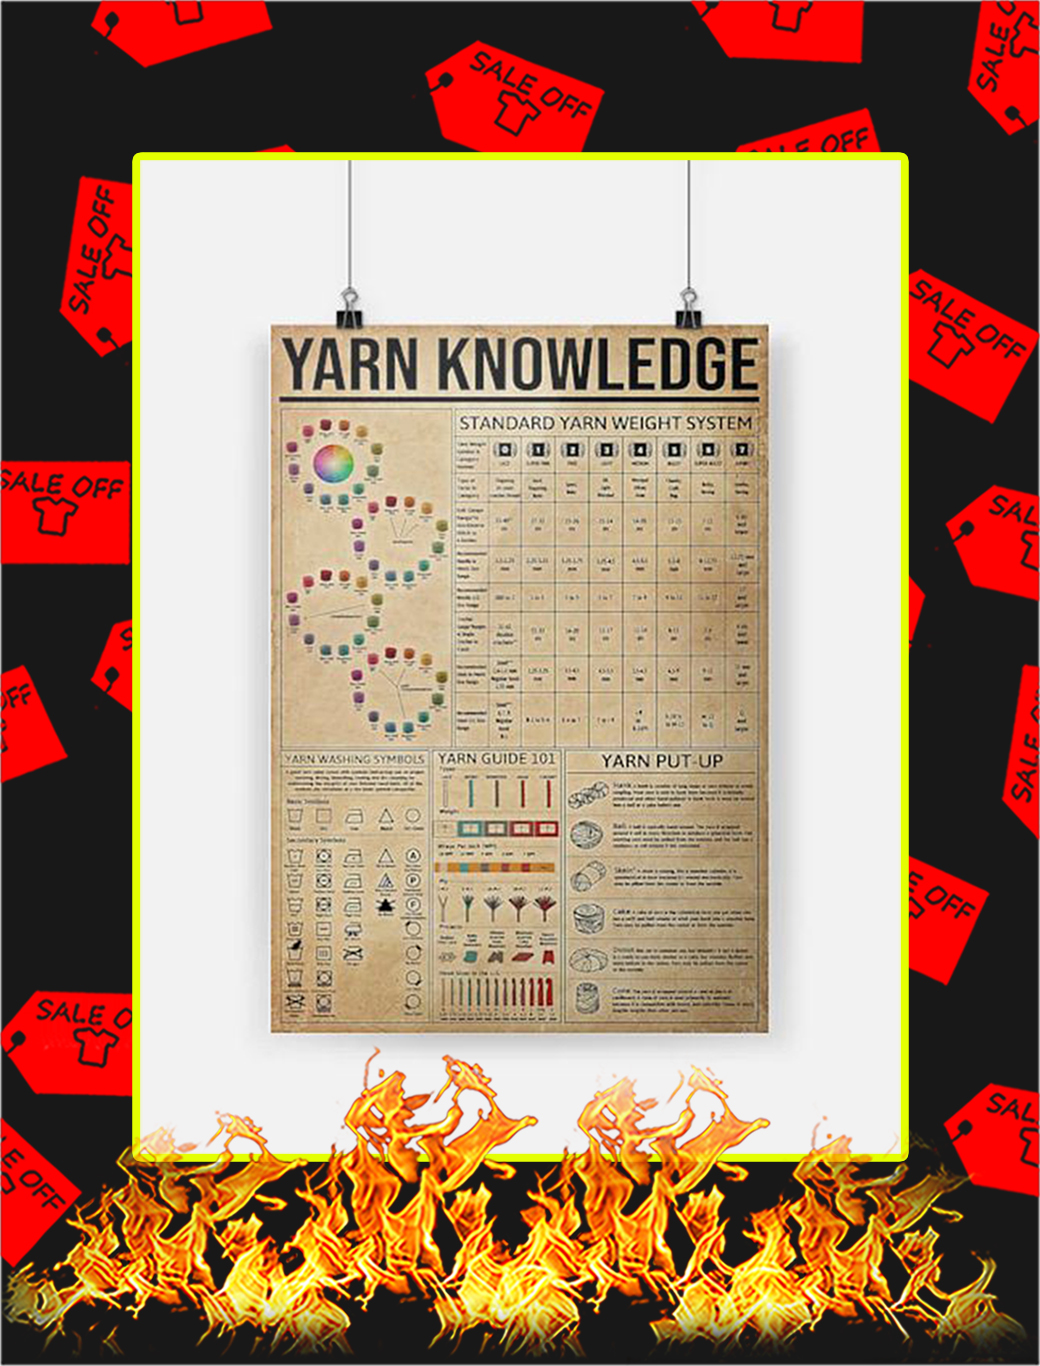 Yarn Knowledge Poster - A2